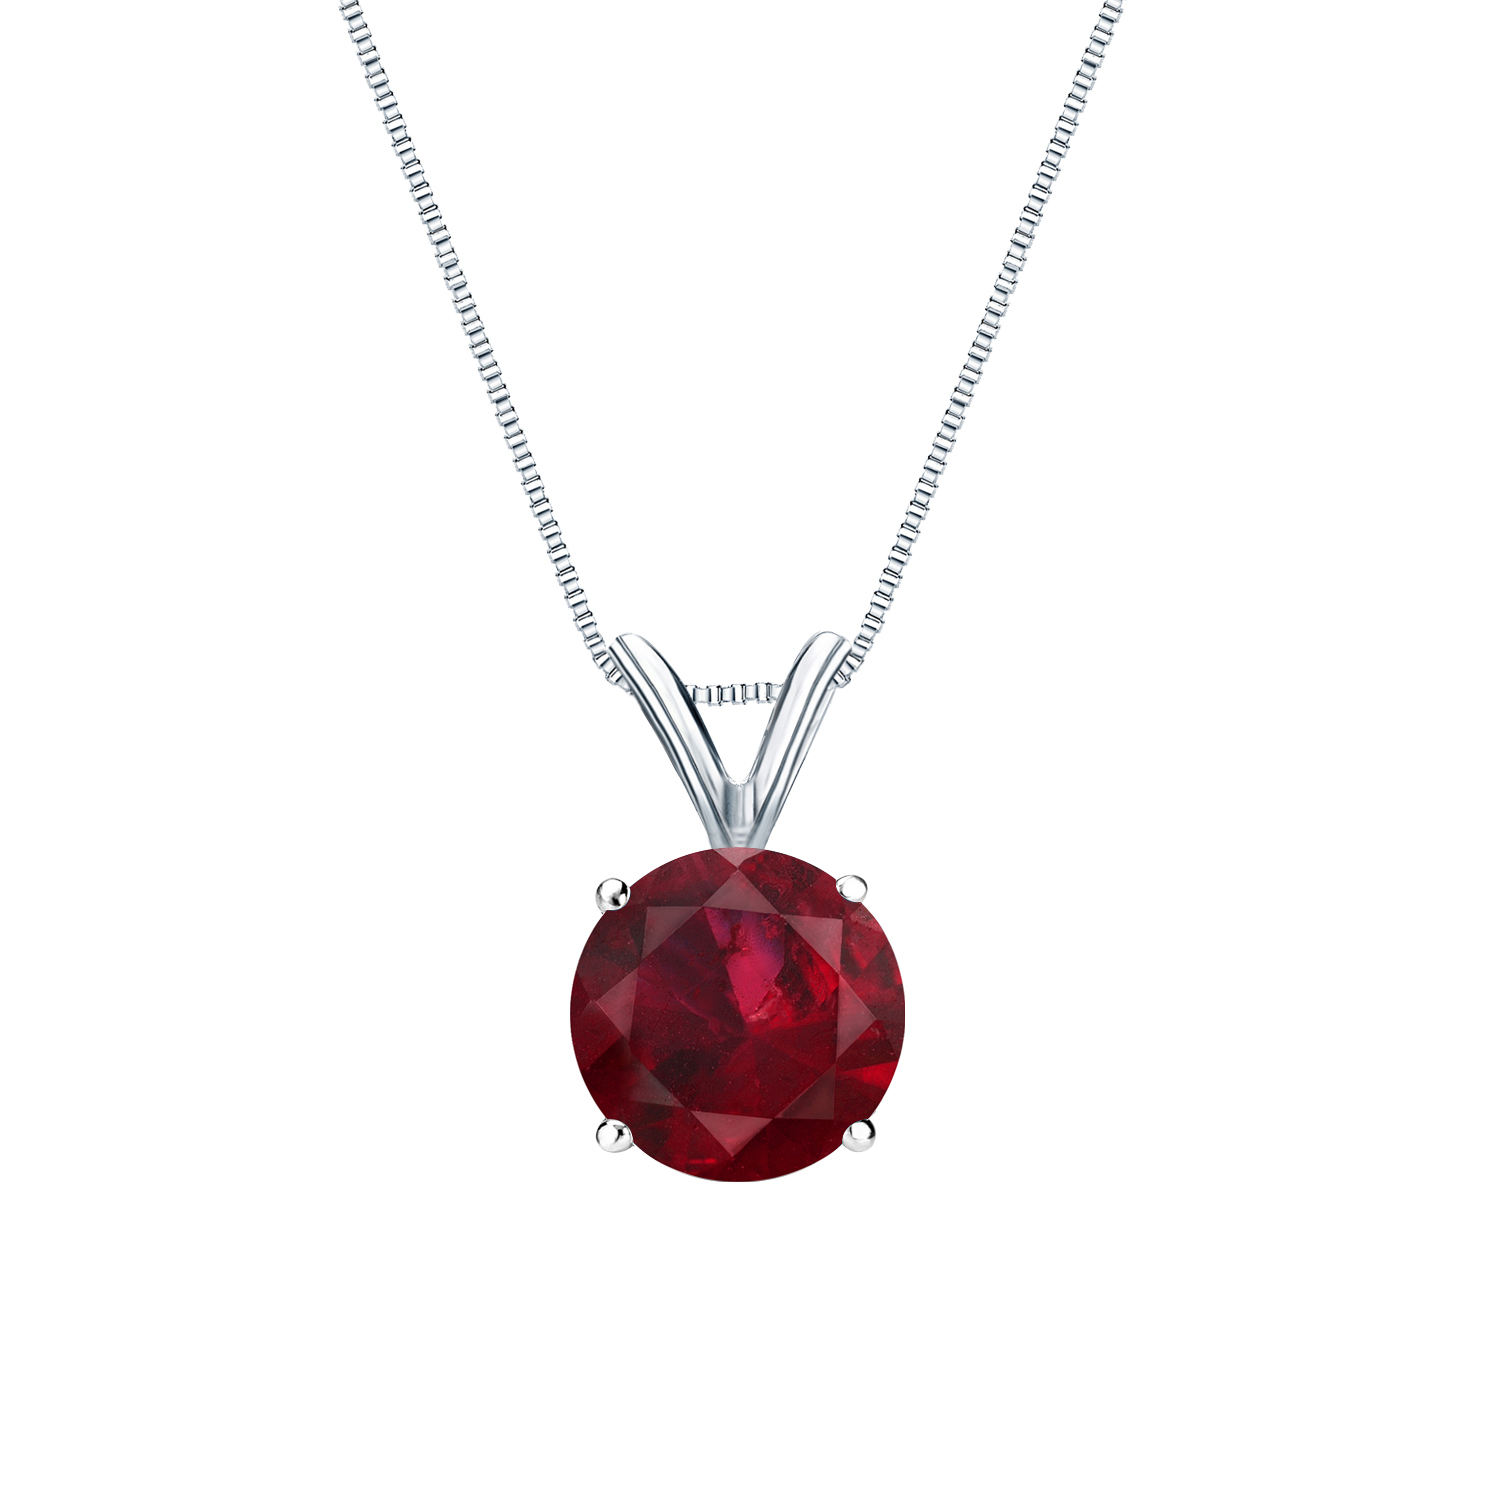 Certified 0.25 ct. tw. Round Ruby Gemstone Solitaire Pendant in 14k White Gold 4-Prong Basket (Red, AAA)